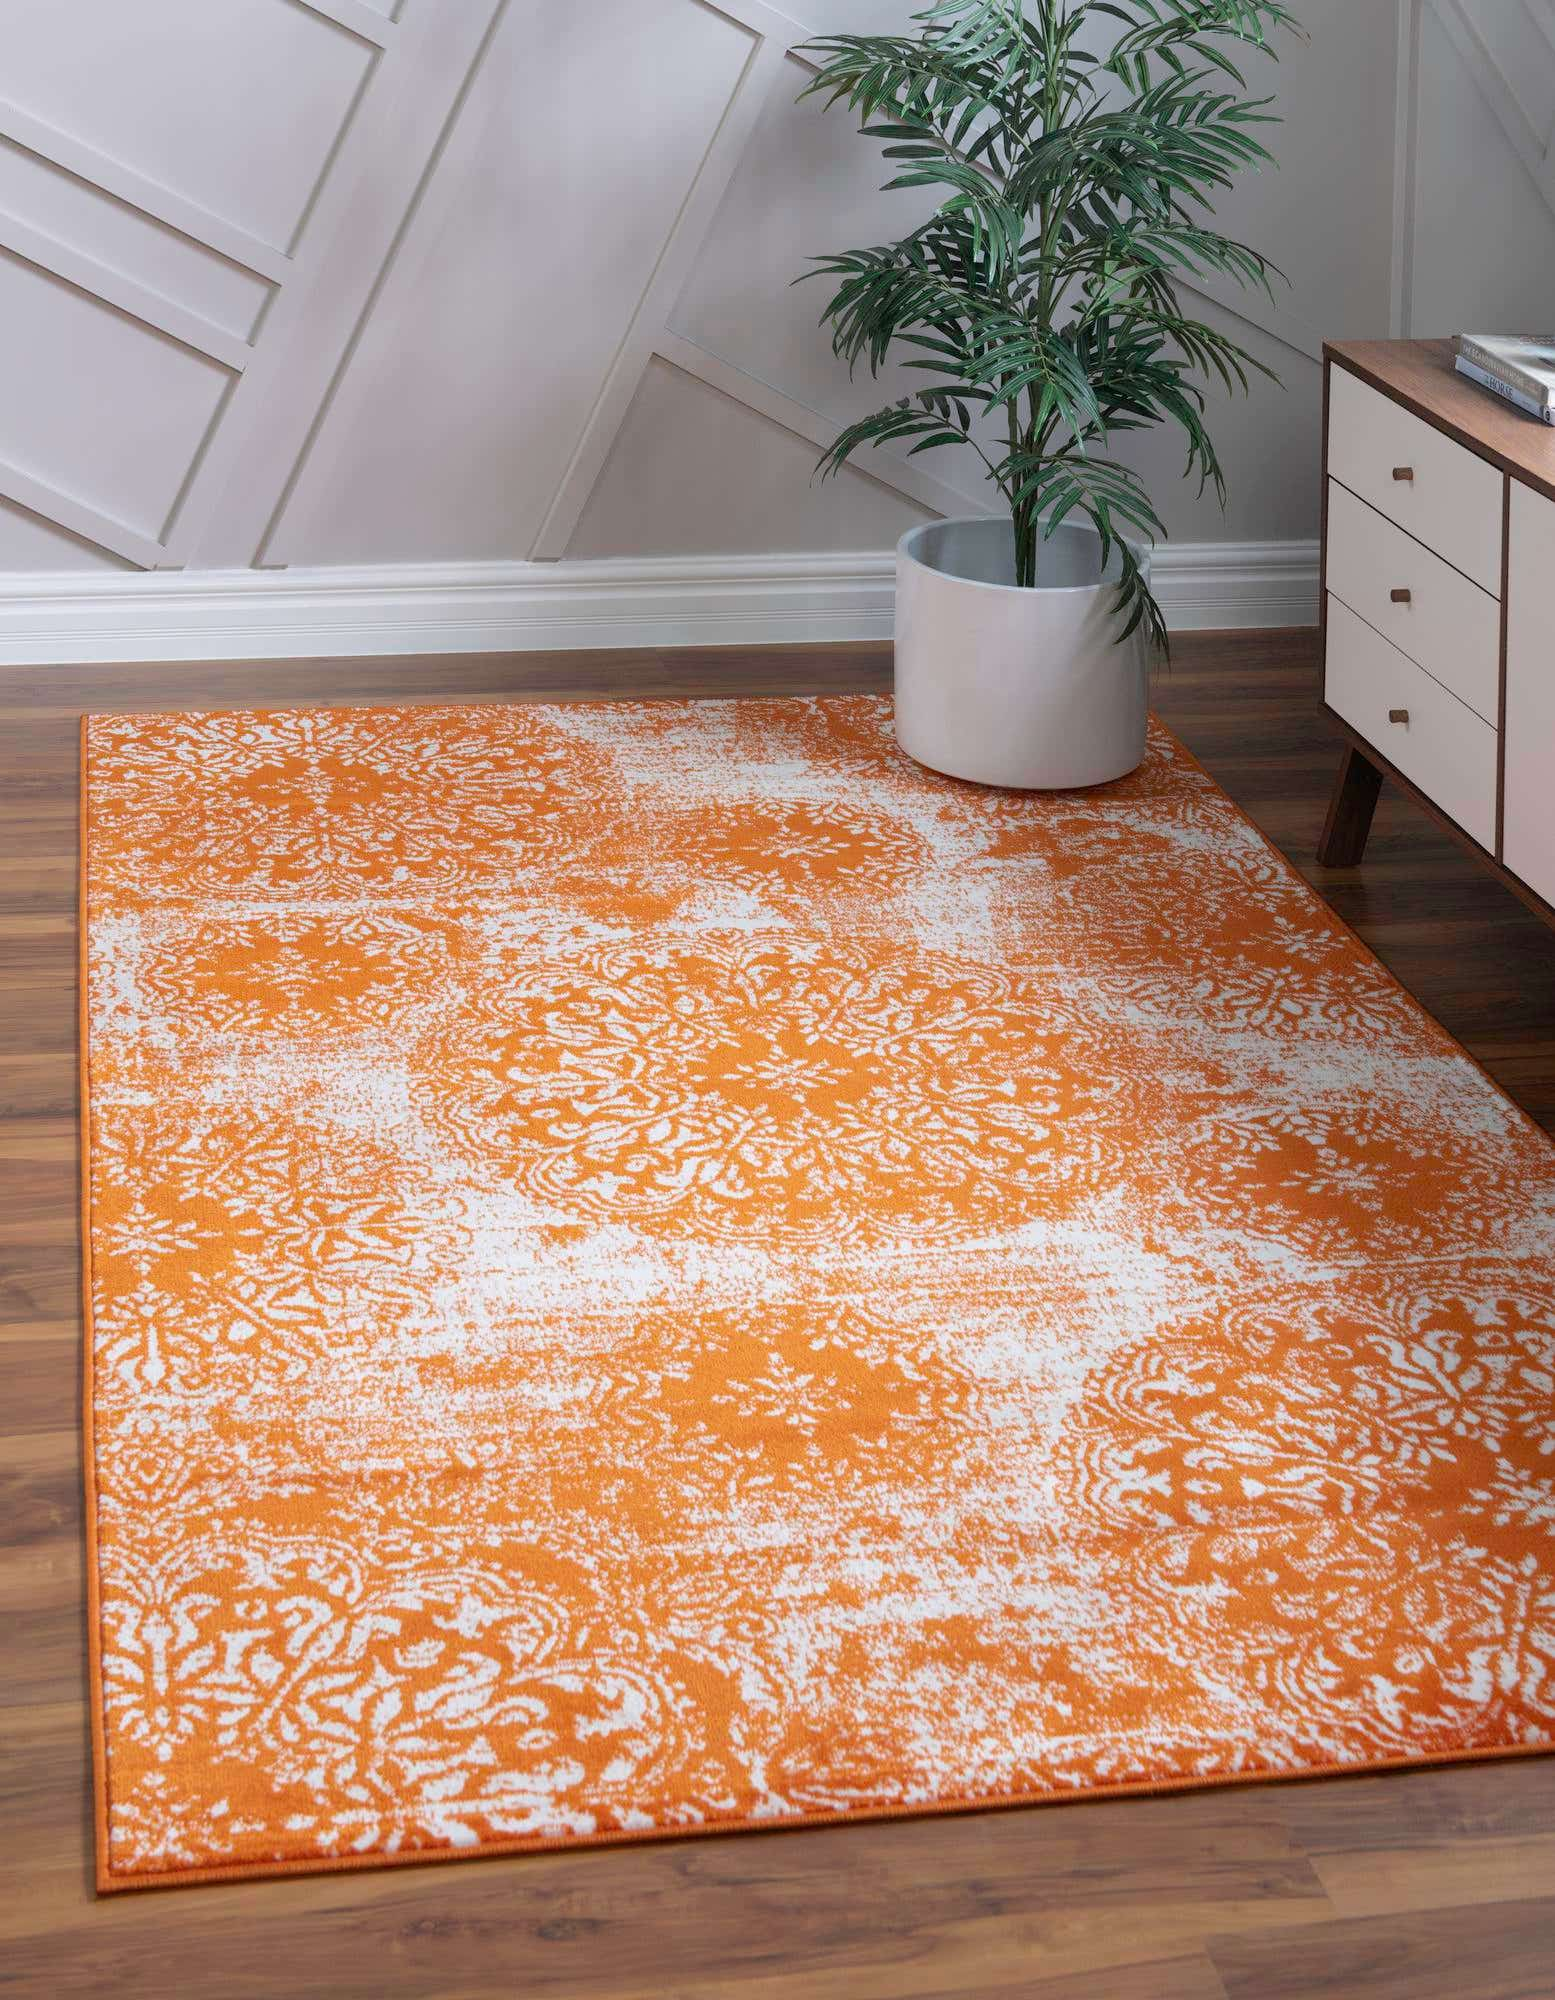 Incorporate Playfulness with an Orange Area Rug